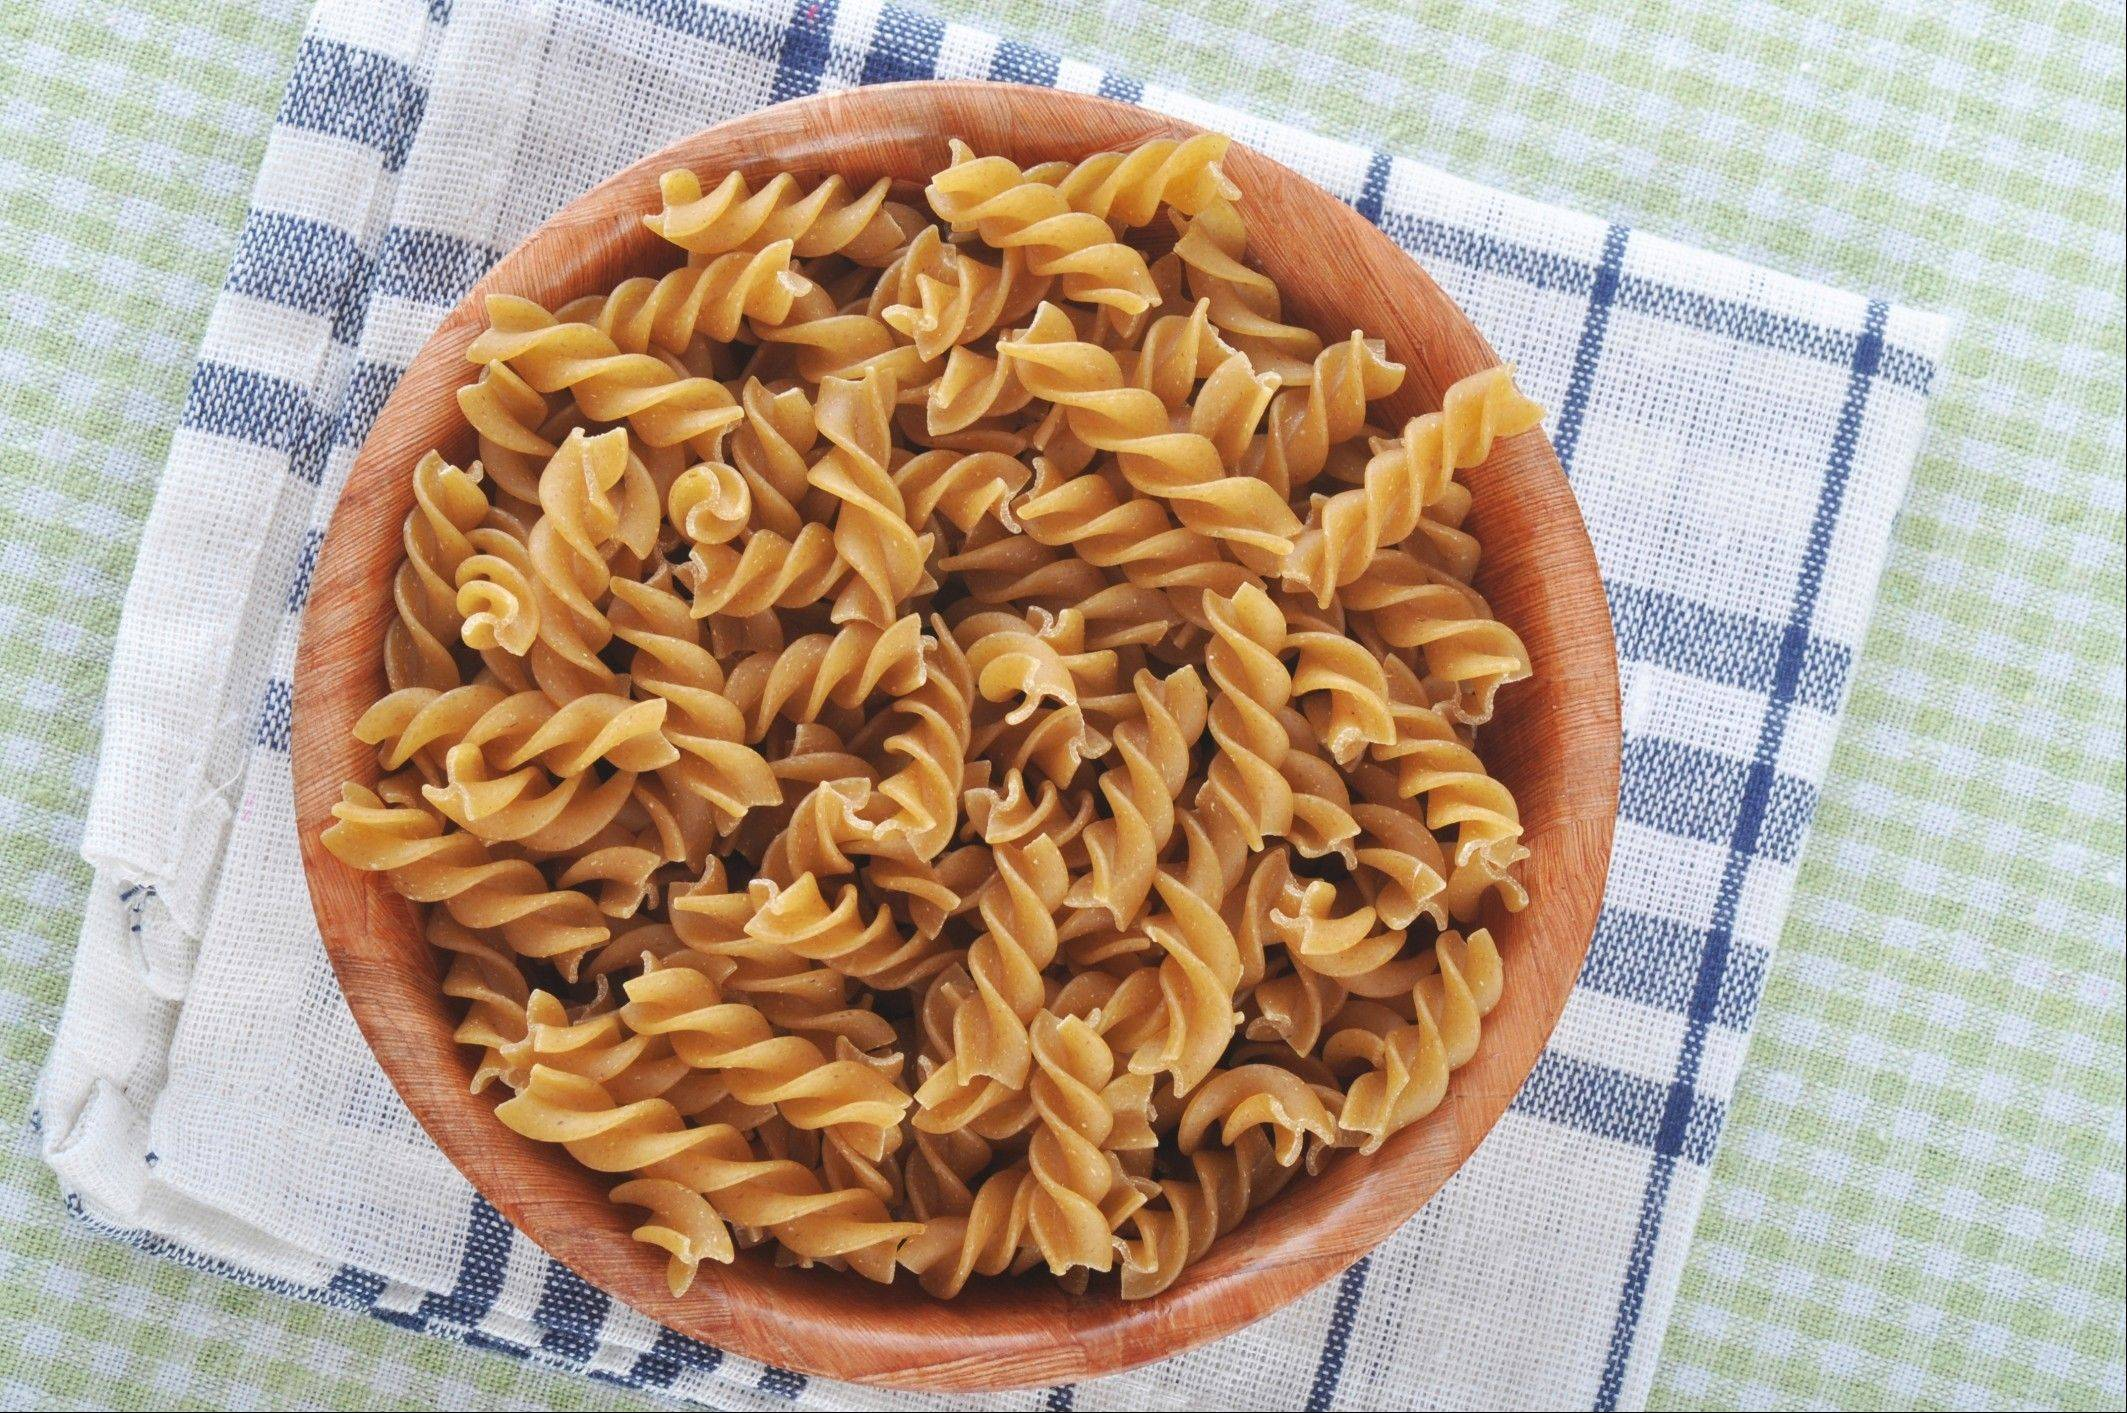 A small serving of whole wheat pasta with dinner can help you lose weight. The key is not overdoing it.